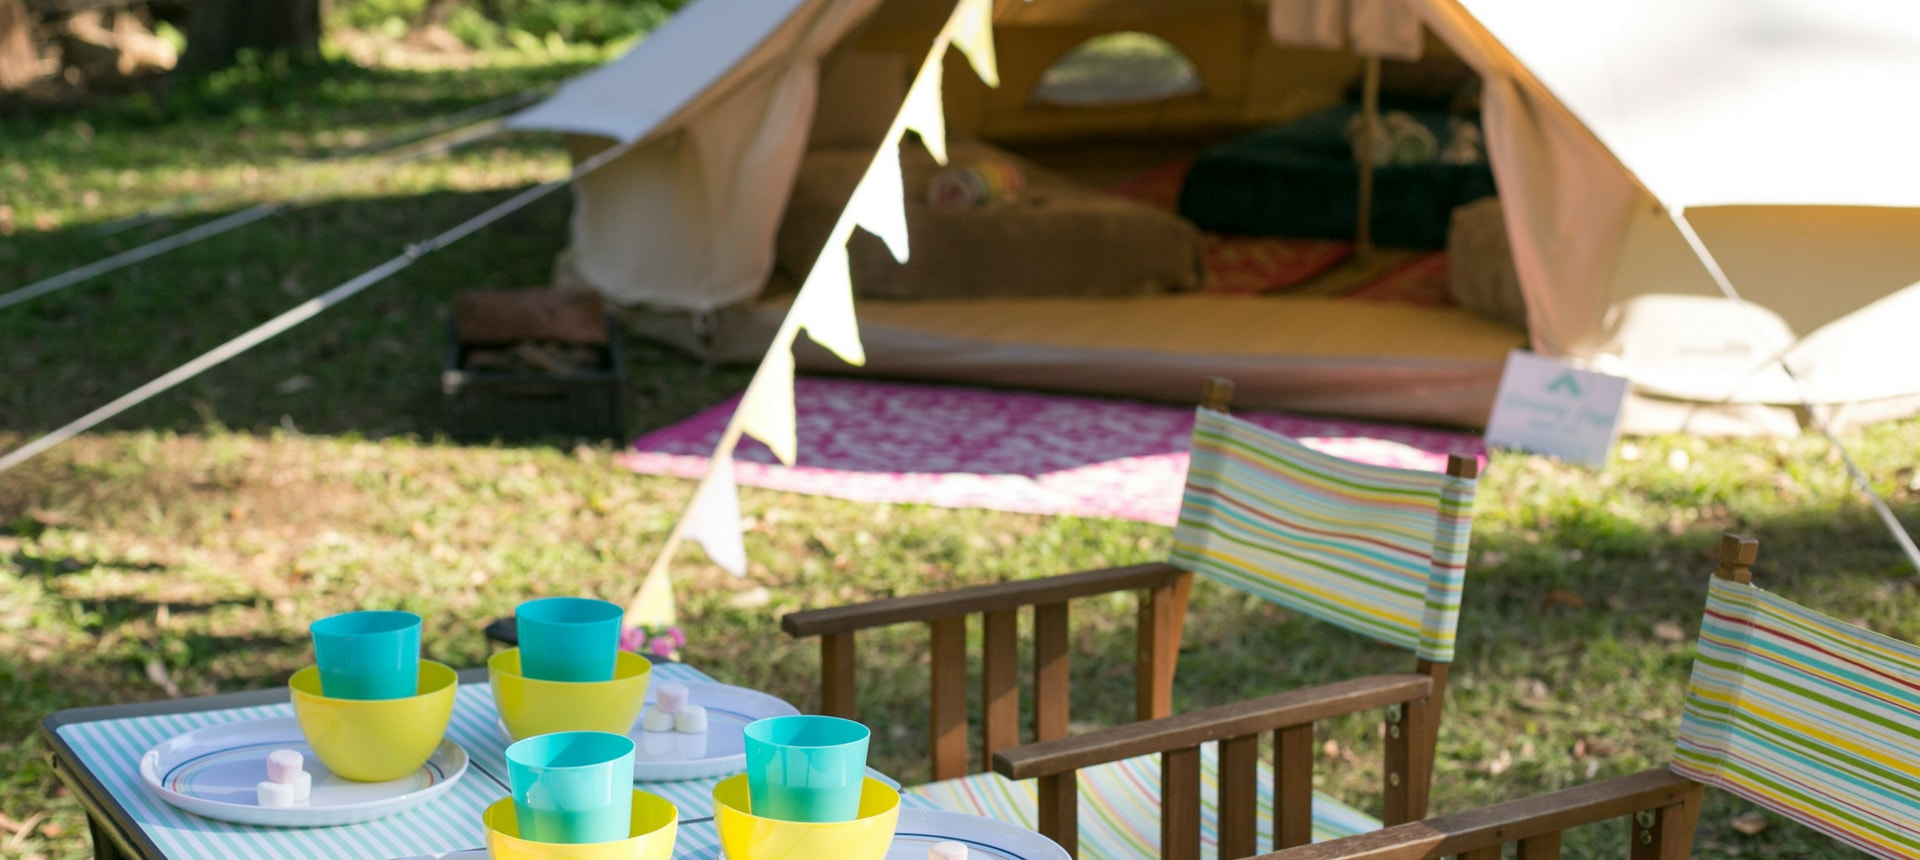 Gold Coast & Brisbane Holidays | Glamping Days Hire Co